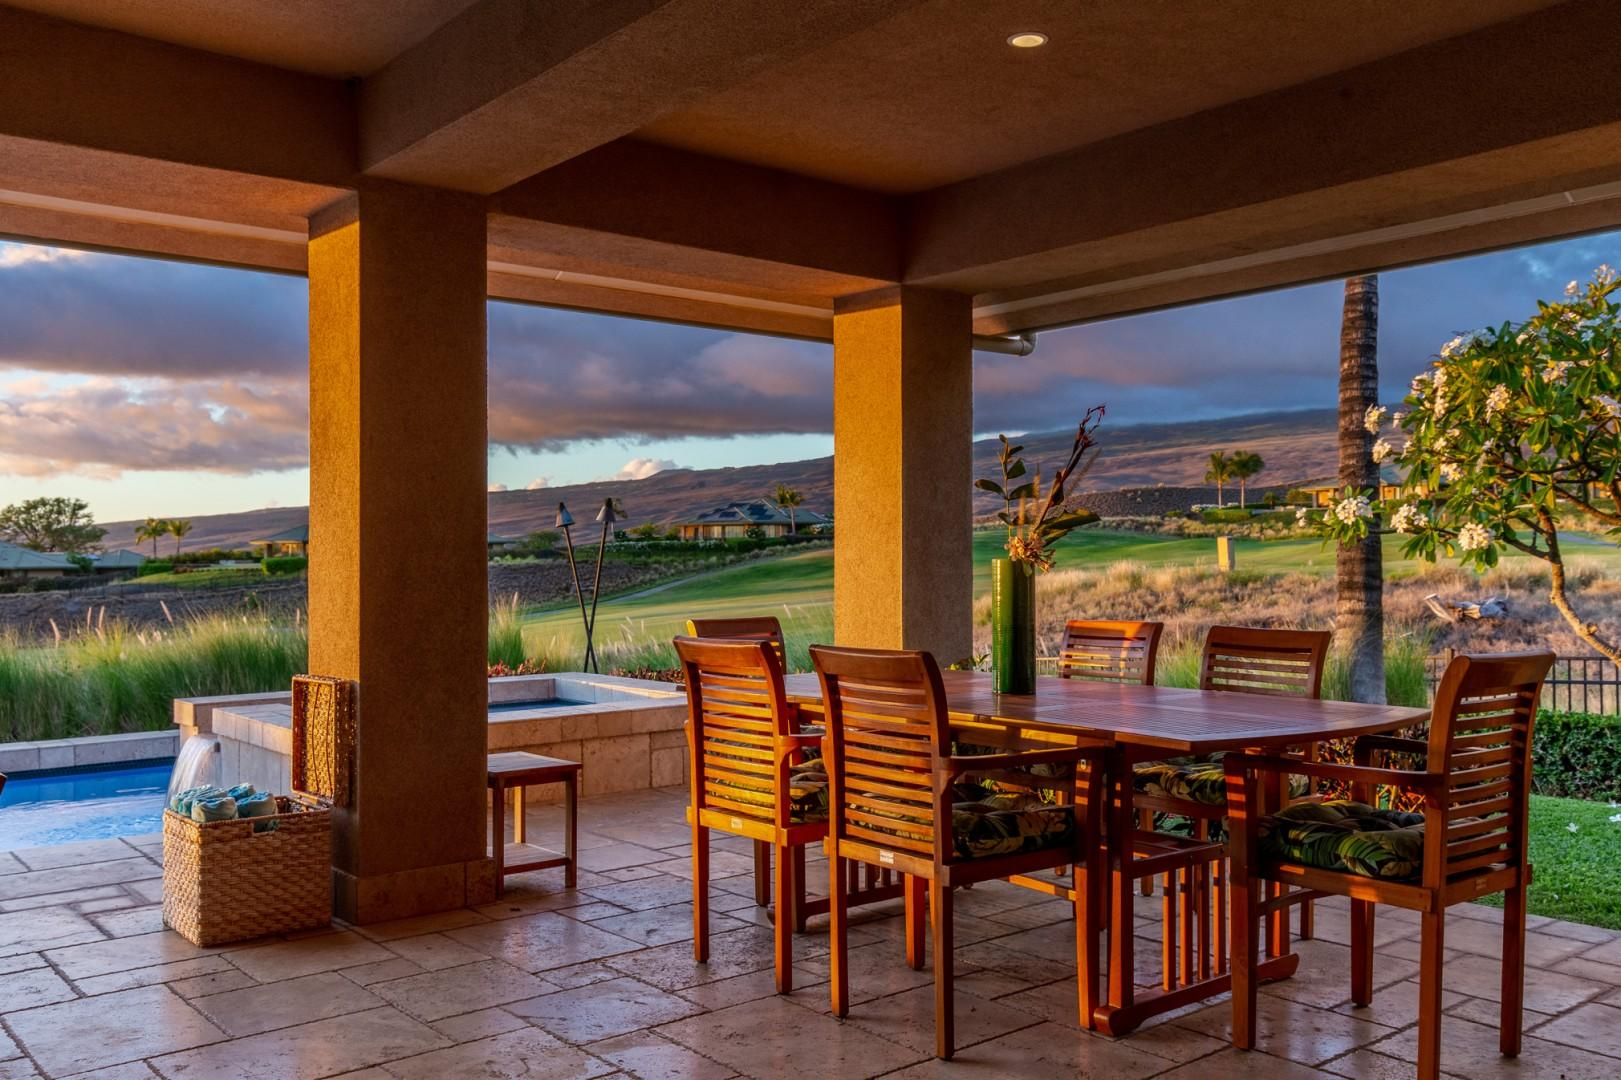 Enjoy cocktails and al fresco meals as you watch the sky turn beautiful colors as it turns to twilight.